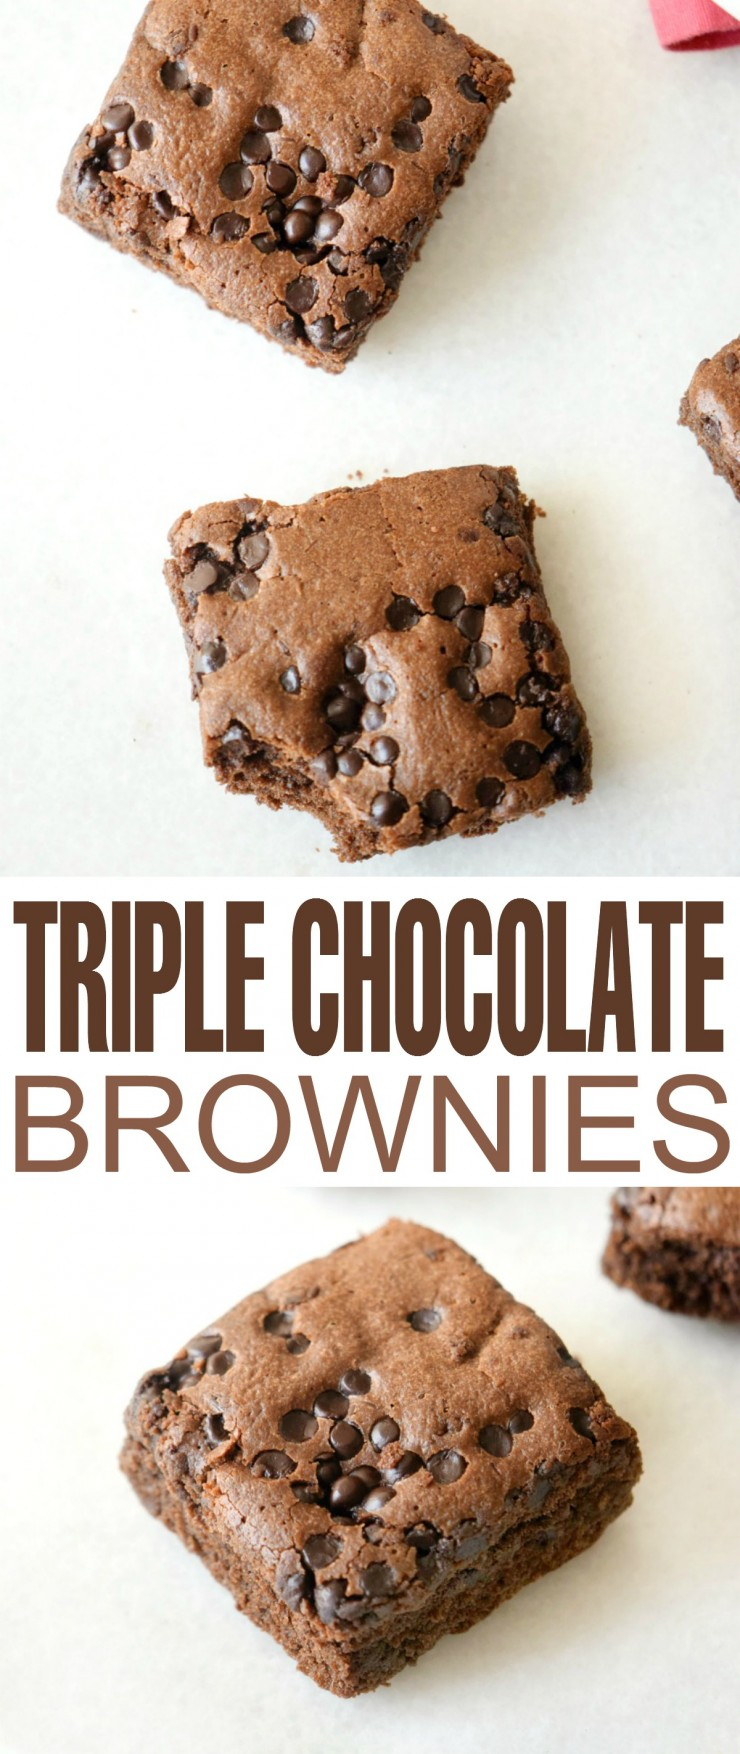 This Triple Chocolate Brownie recipe is perfect for any chocolate lover. Rich and full of flavour, this is a perfect dessert!